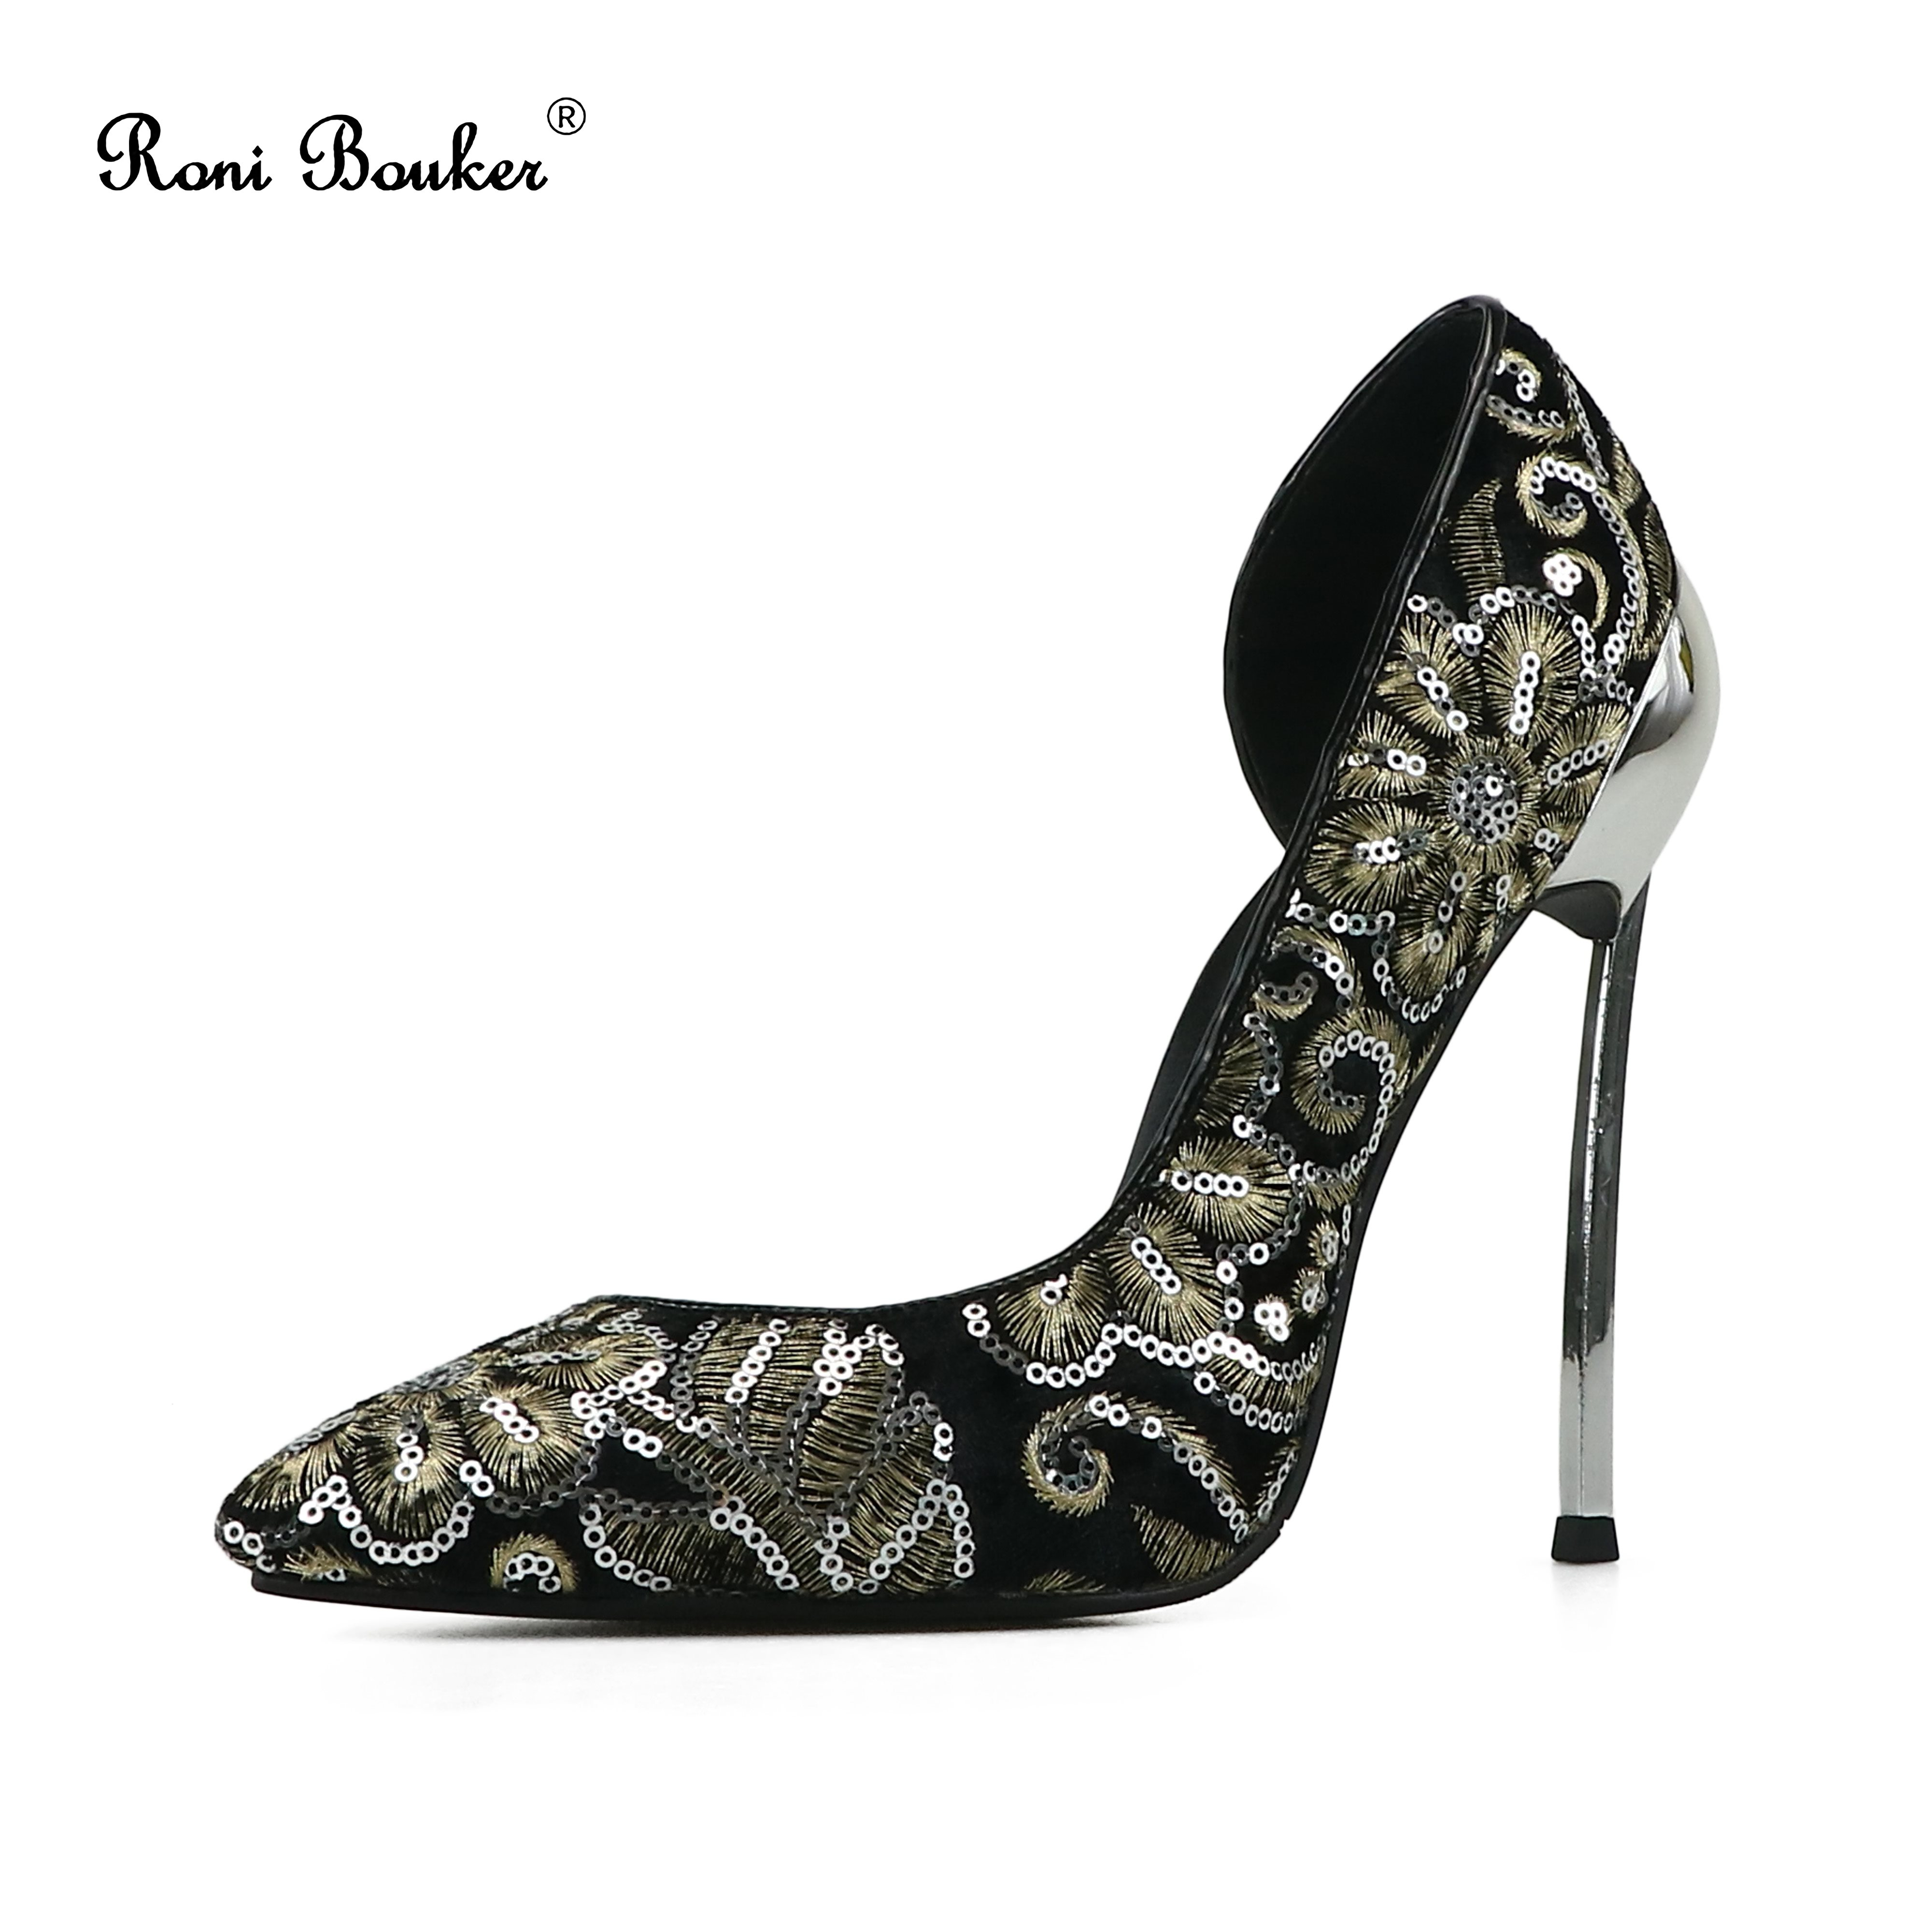 Roni Bouker Women Pumps Fashion Pointed Toe Party Wedding Stilettos Heel Woman Elegant Embroidery Design High Heels Ladies ShoesRoni Bouker Women Pumps Fashion Pointed Toe Party Wedding Stilettos Heel Woman Elegant Embroidery Design High Heels Ladies Shoes